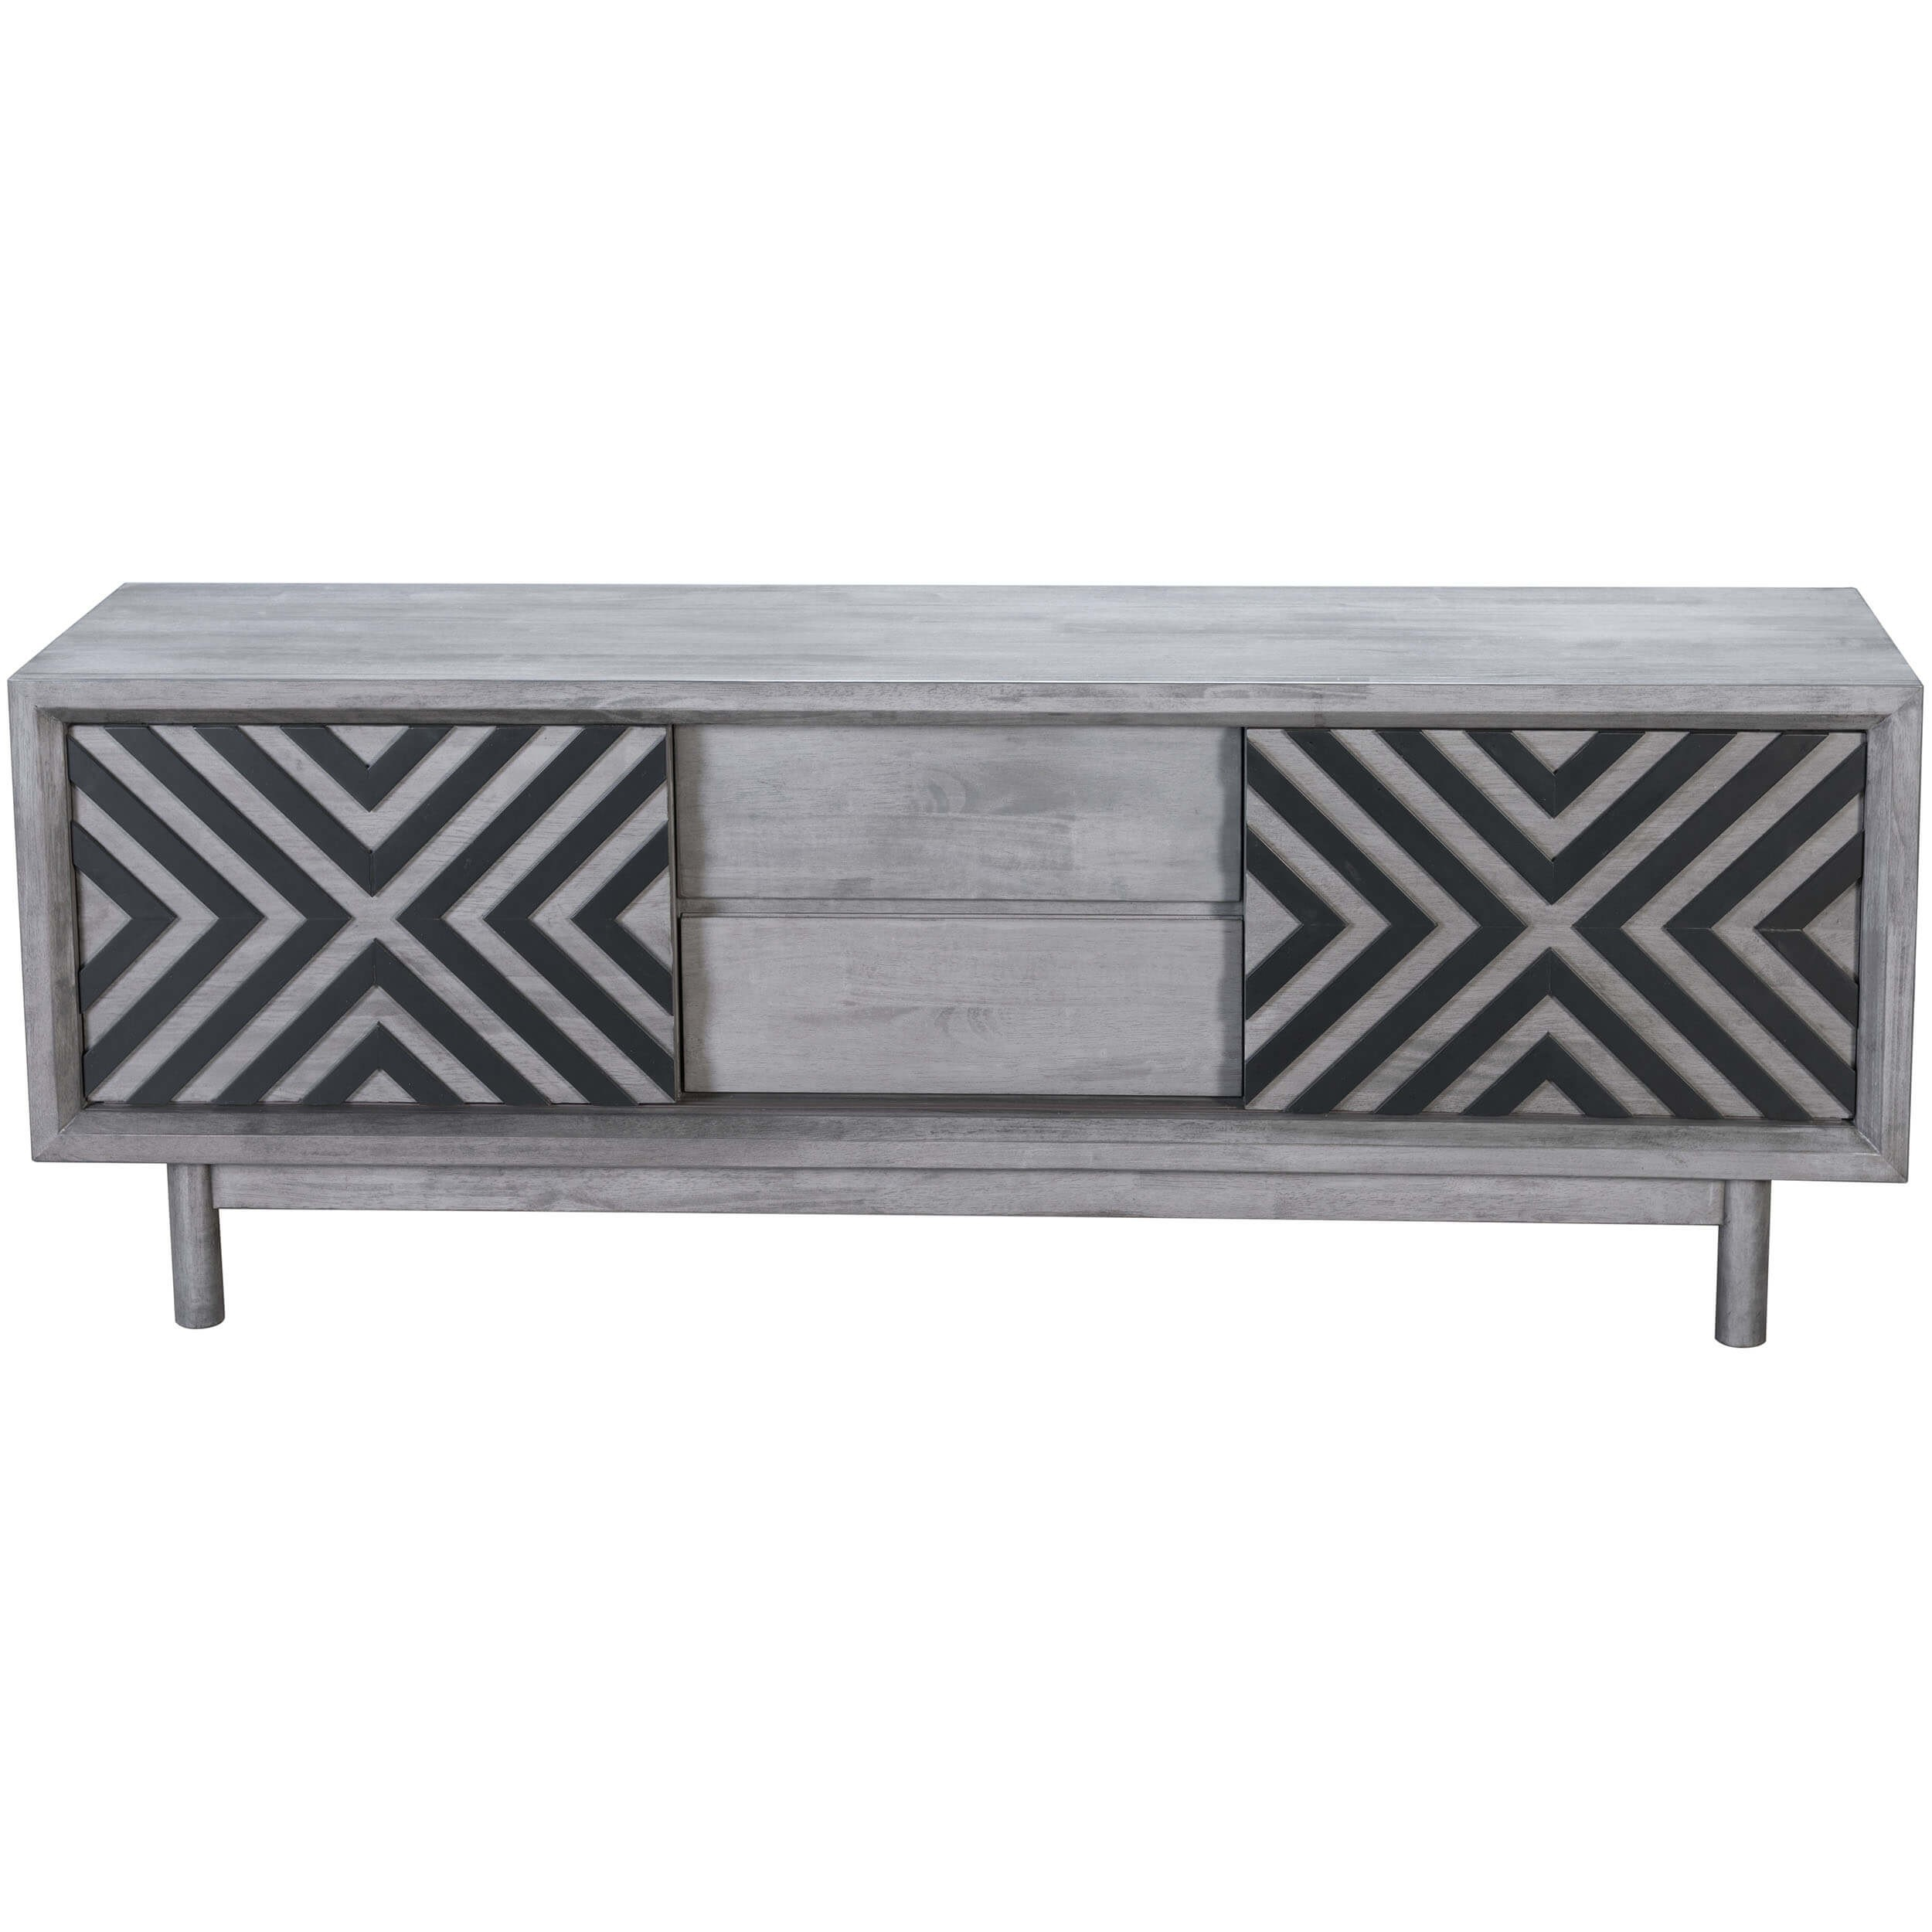 Raven Tv Stand, Old Gray – Zuo Modern – Furniture Pertaining To Raven Grey Tv Stands (Gallery 2 of 30)